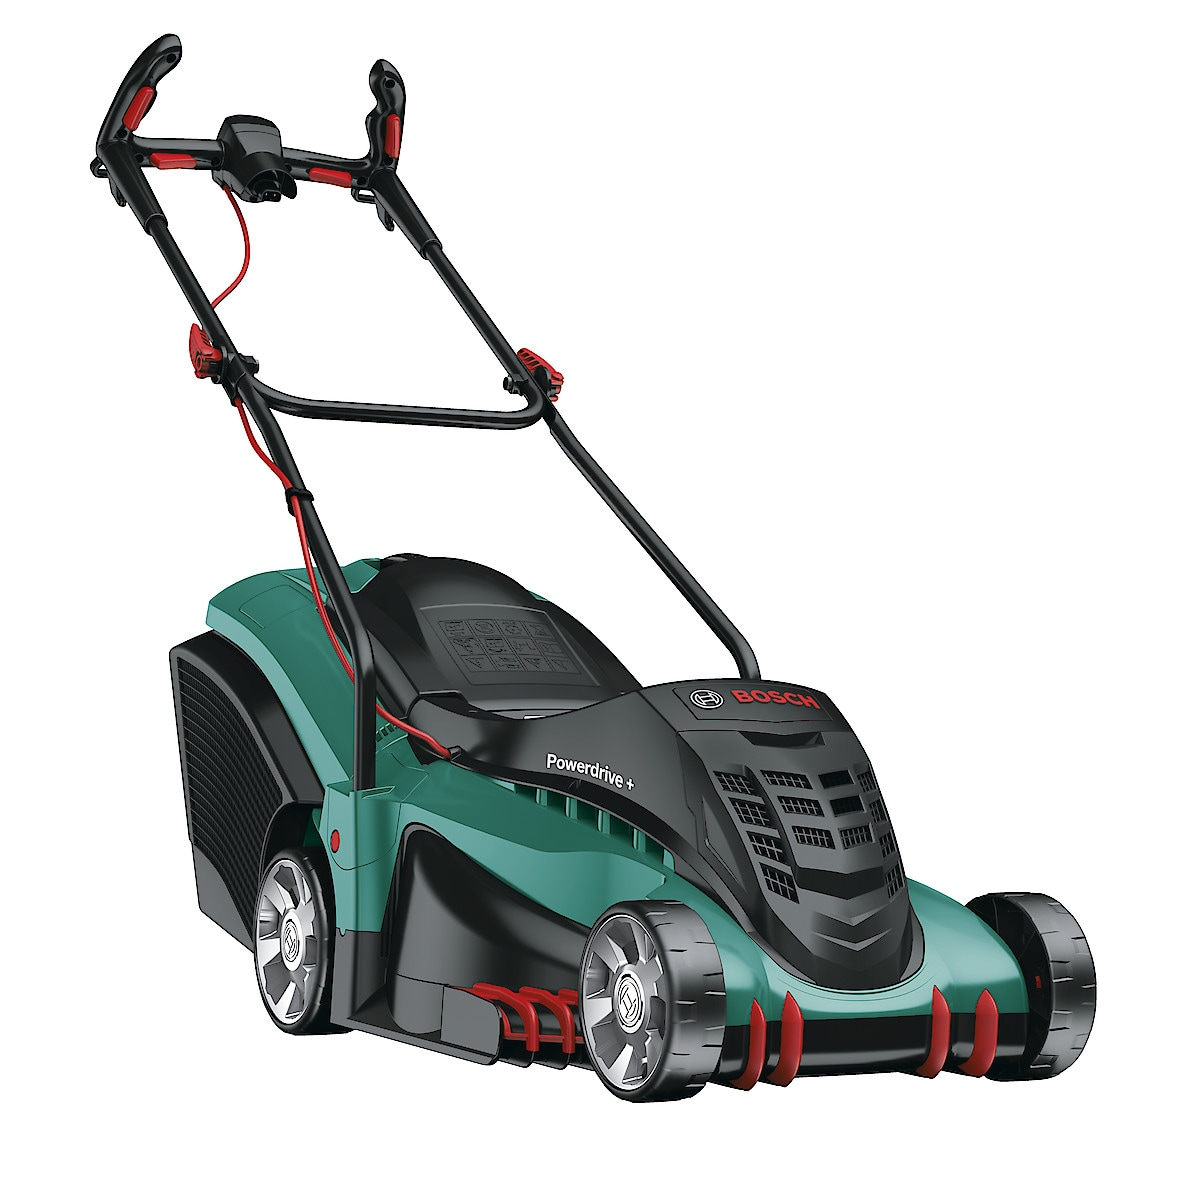 Bosch Rotak 40 Electric Lawnmower